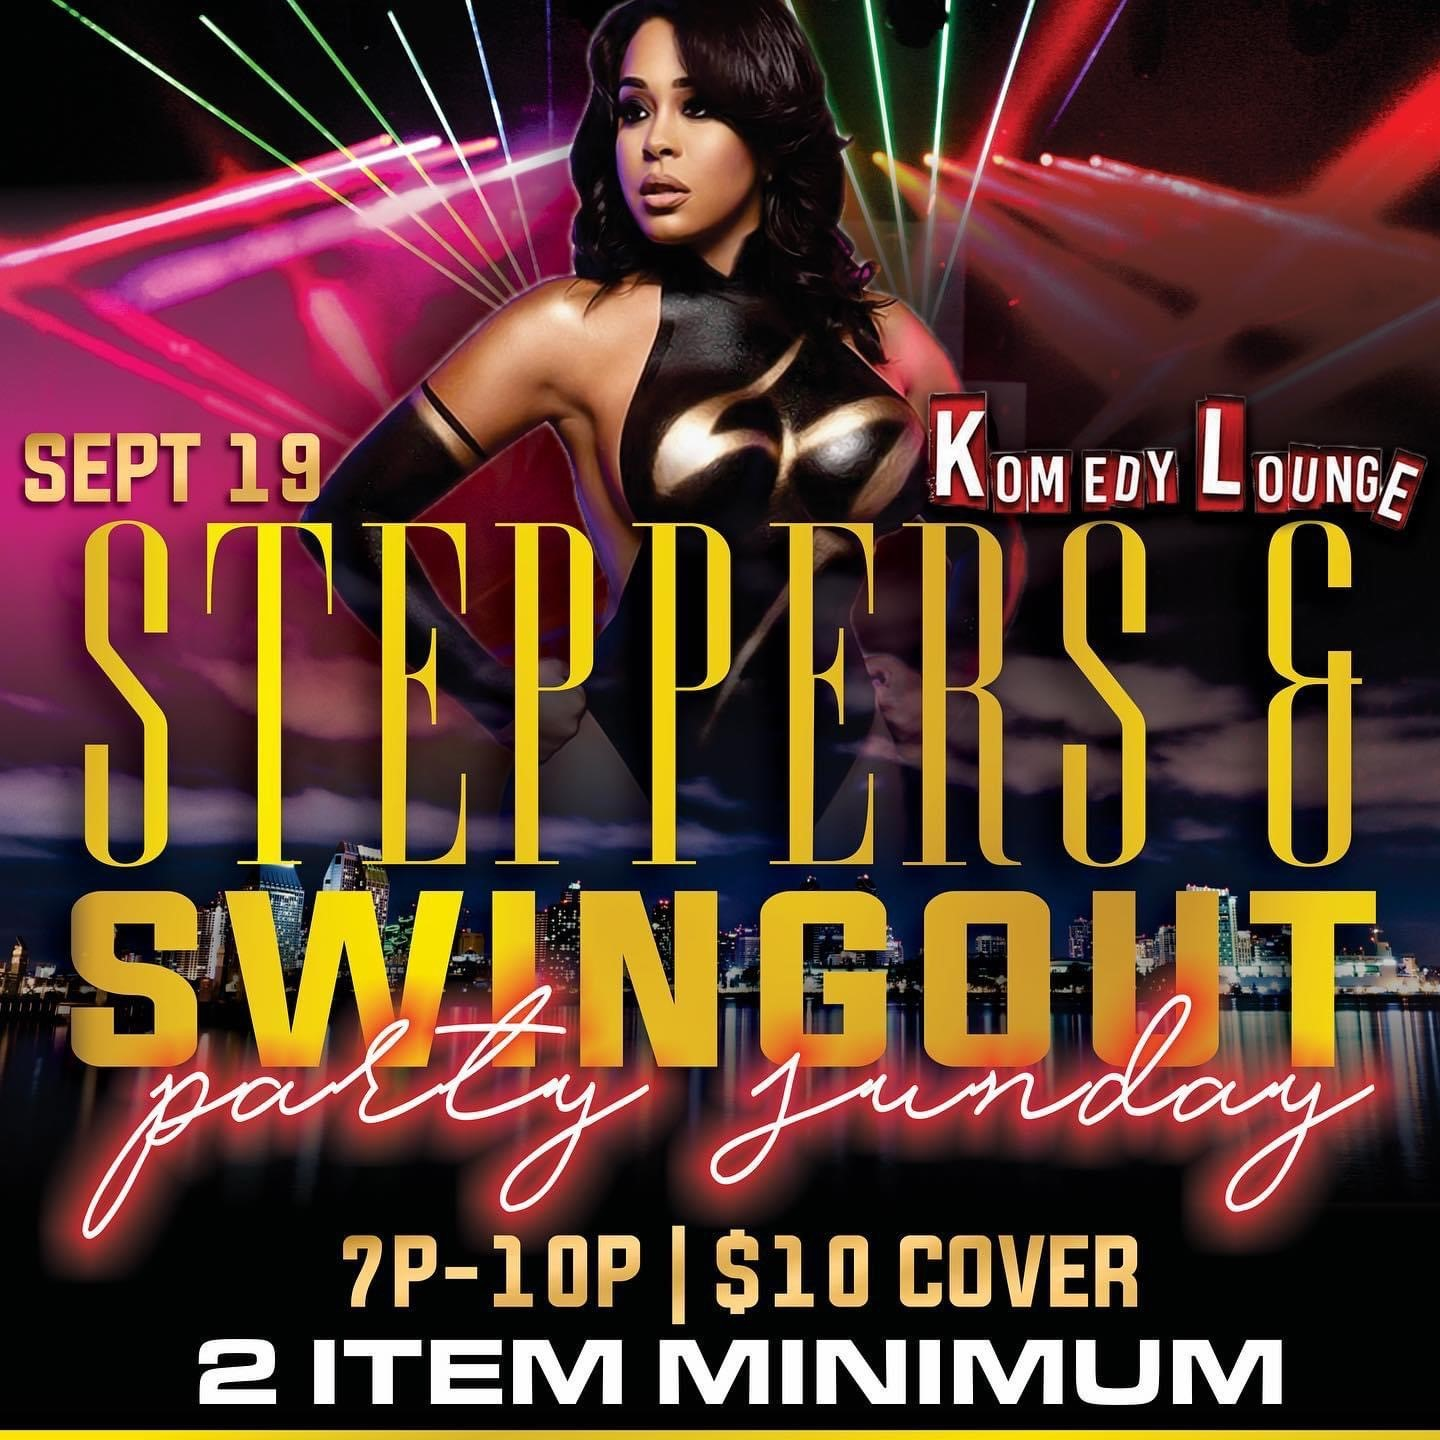 Steppers & Swingout Party  on Sep 19, 19:00@Komedy Lounge - Buy tickets and Get information on komedylounge.com